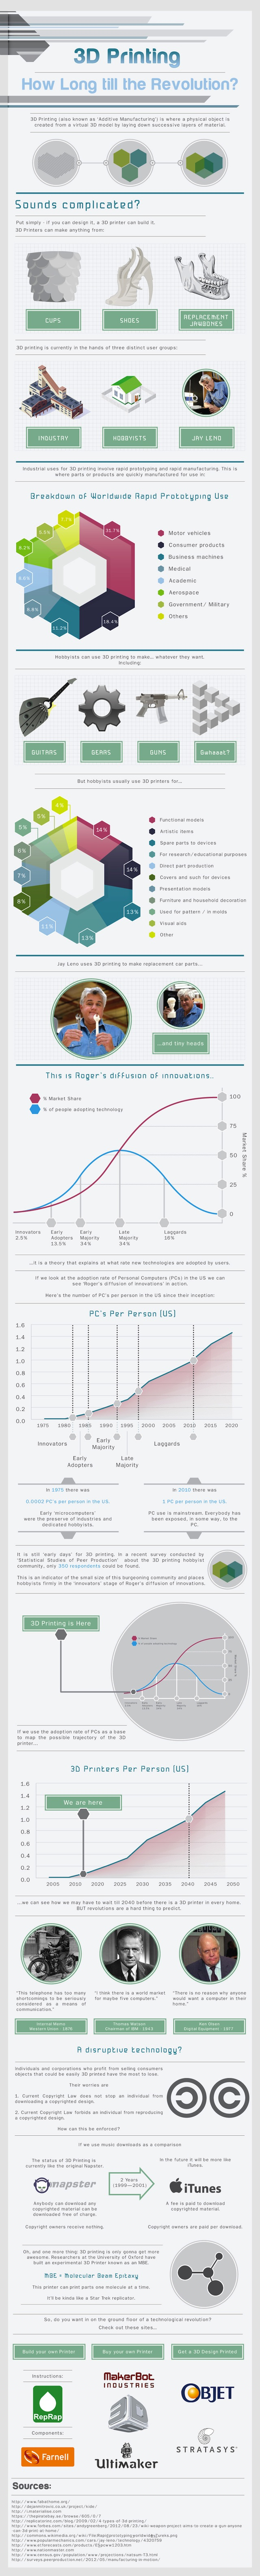 3D-Printing-in-the-Home-Farnell-Element14-Infographic